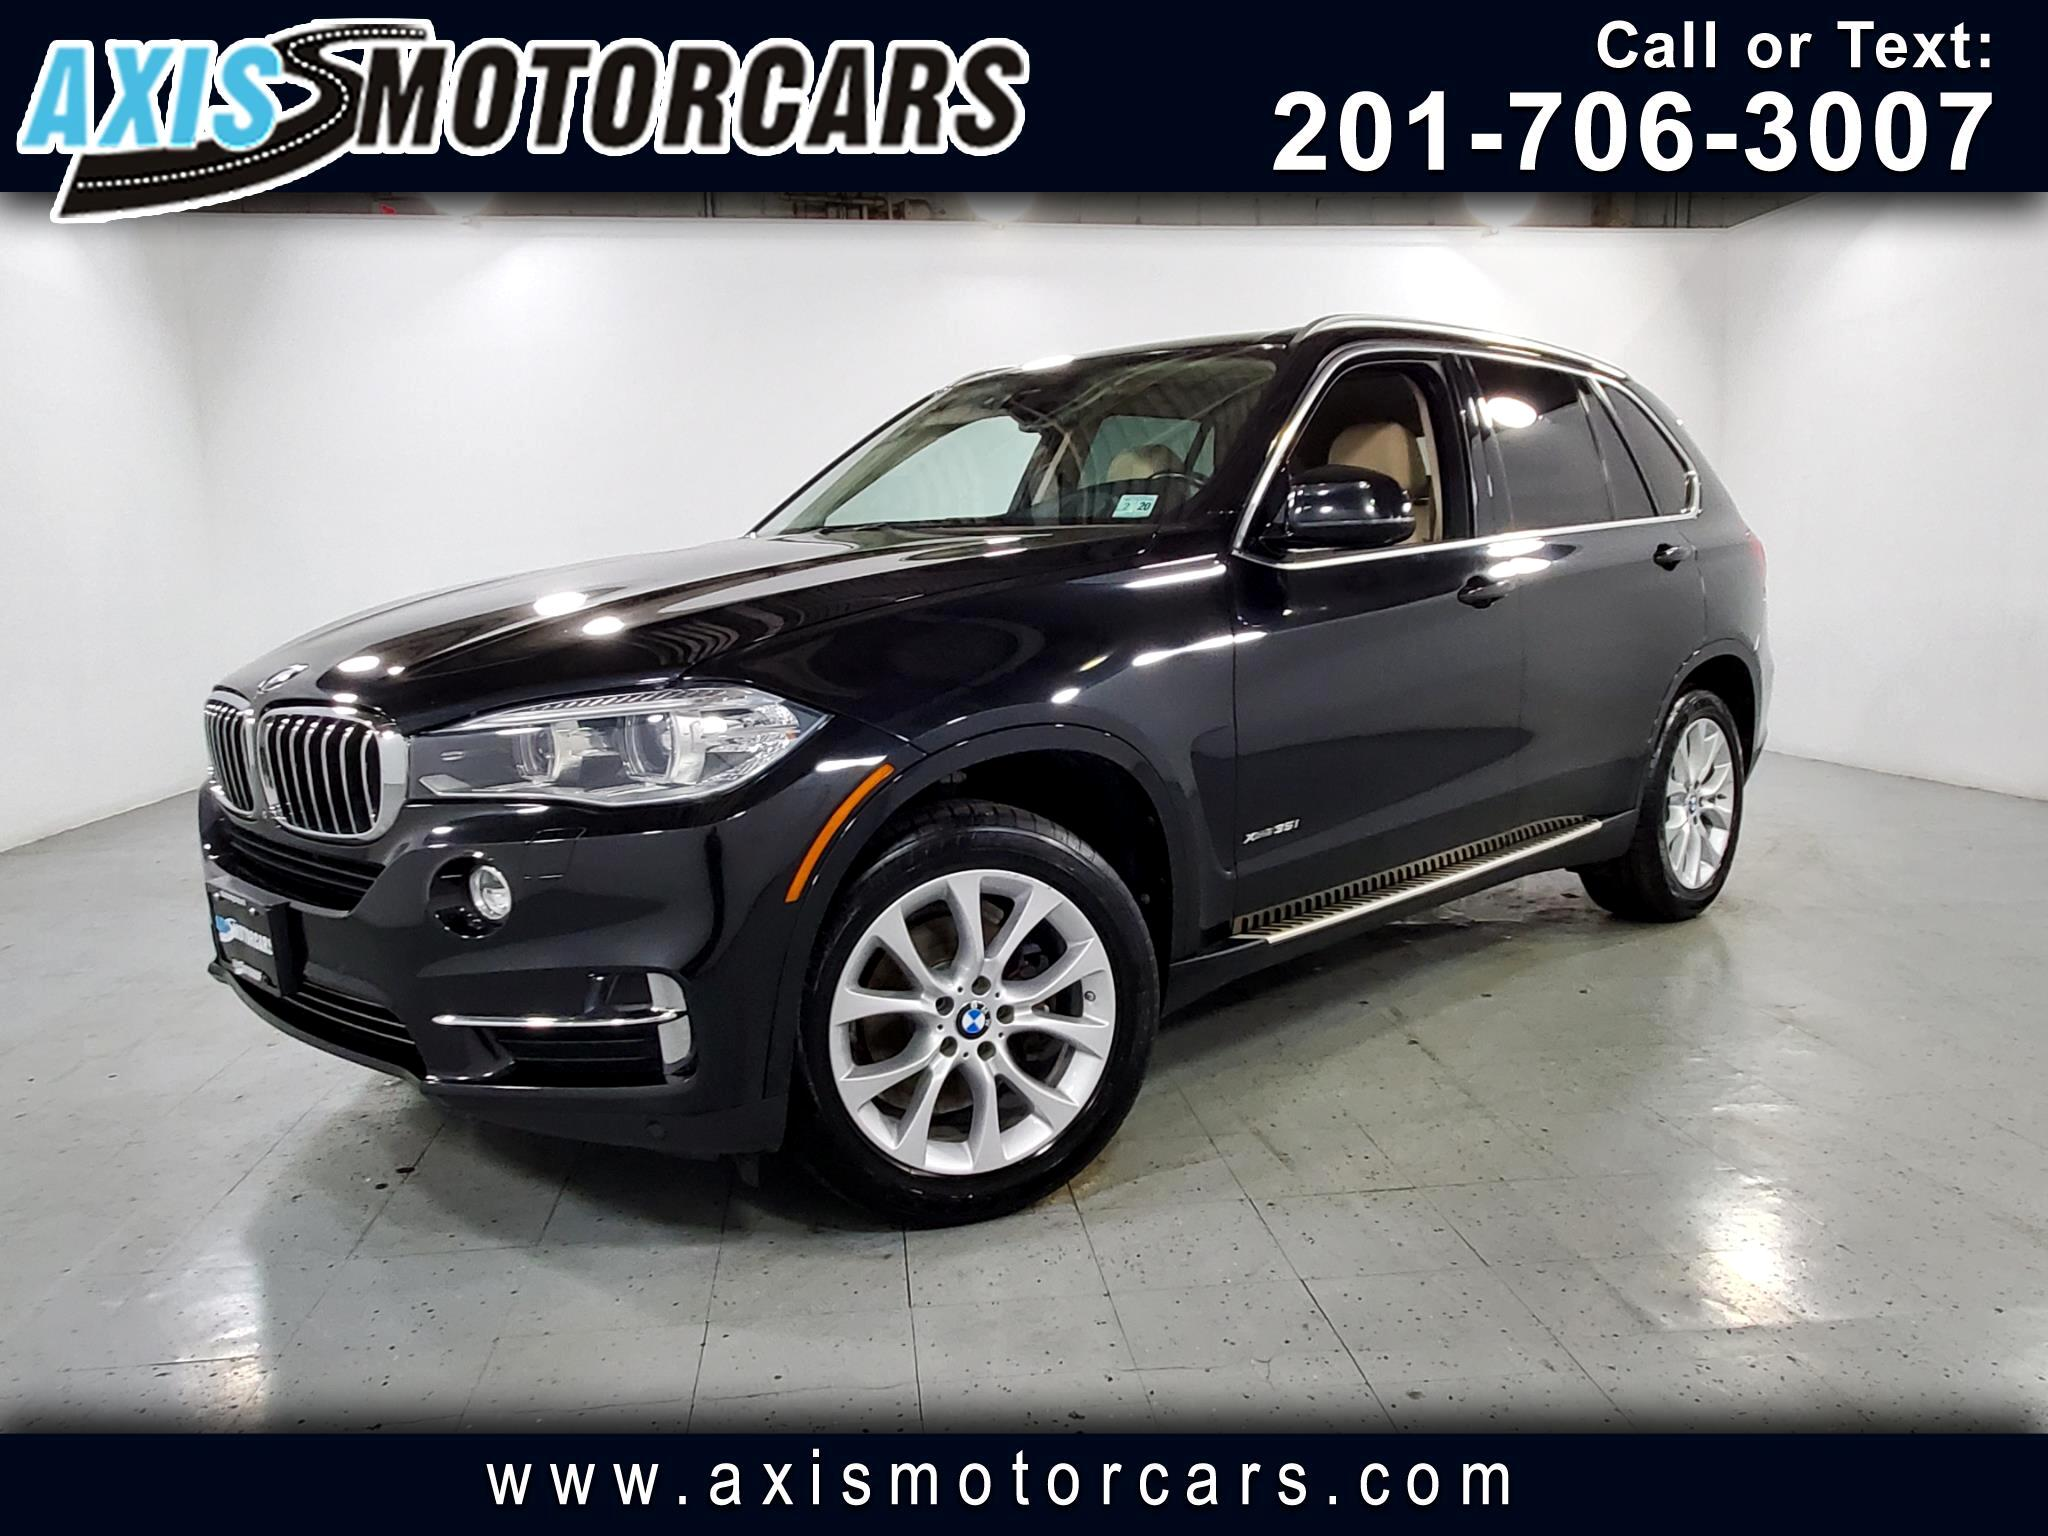 2015 BMW X5 XDrive w/Harman Kardon Sound System Backup Camera 360